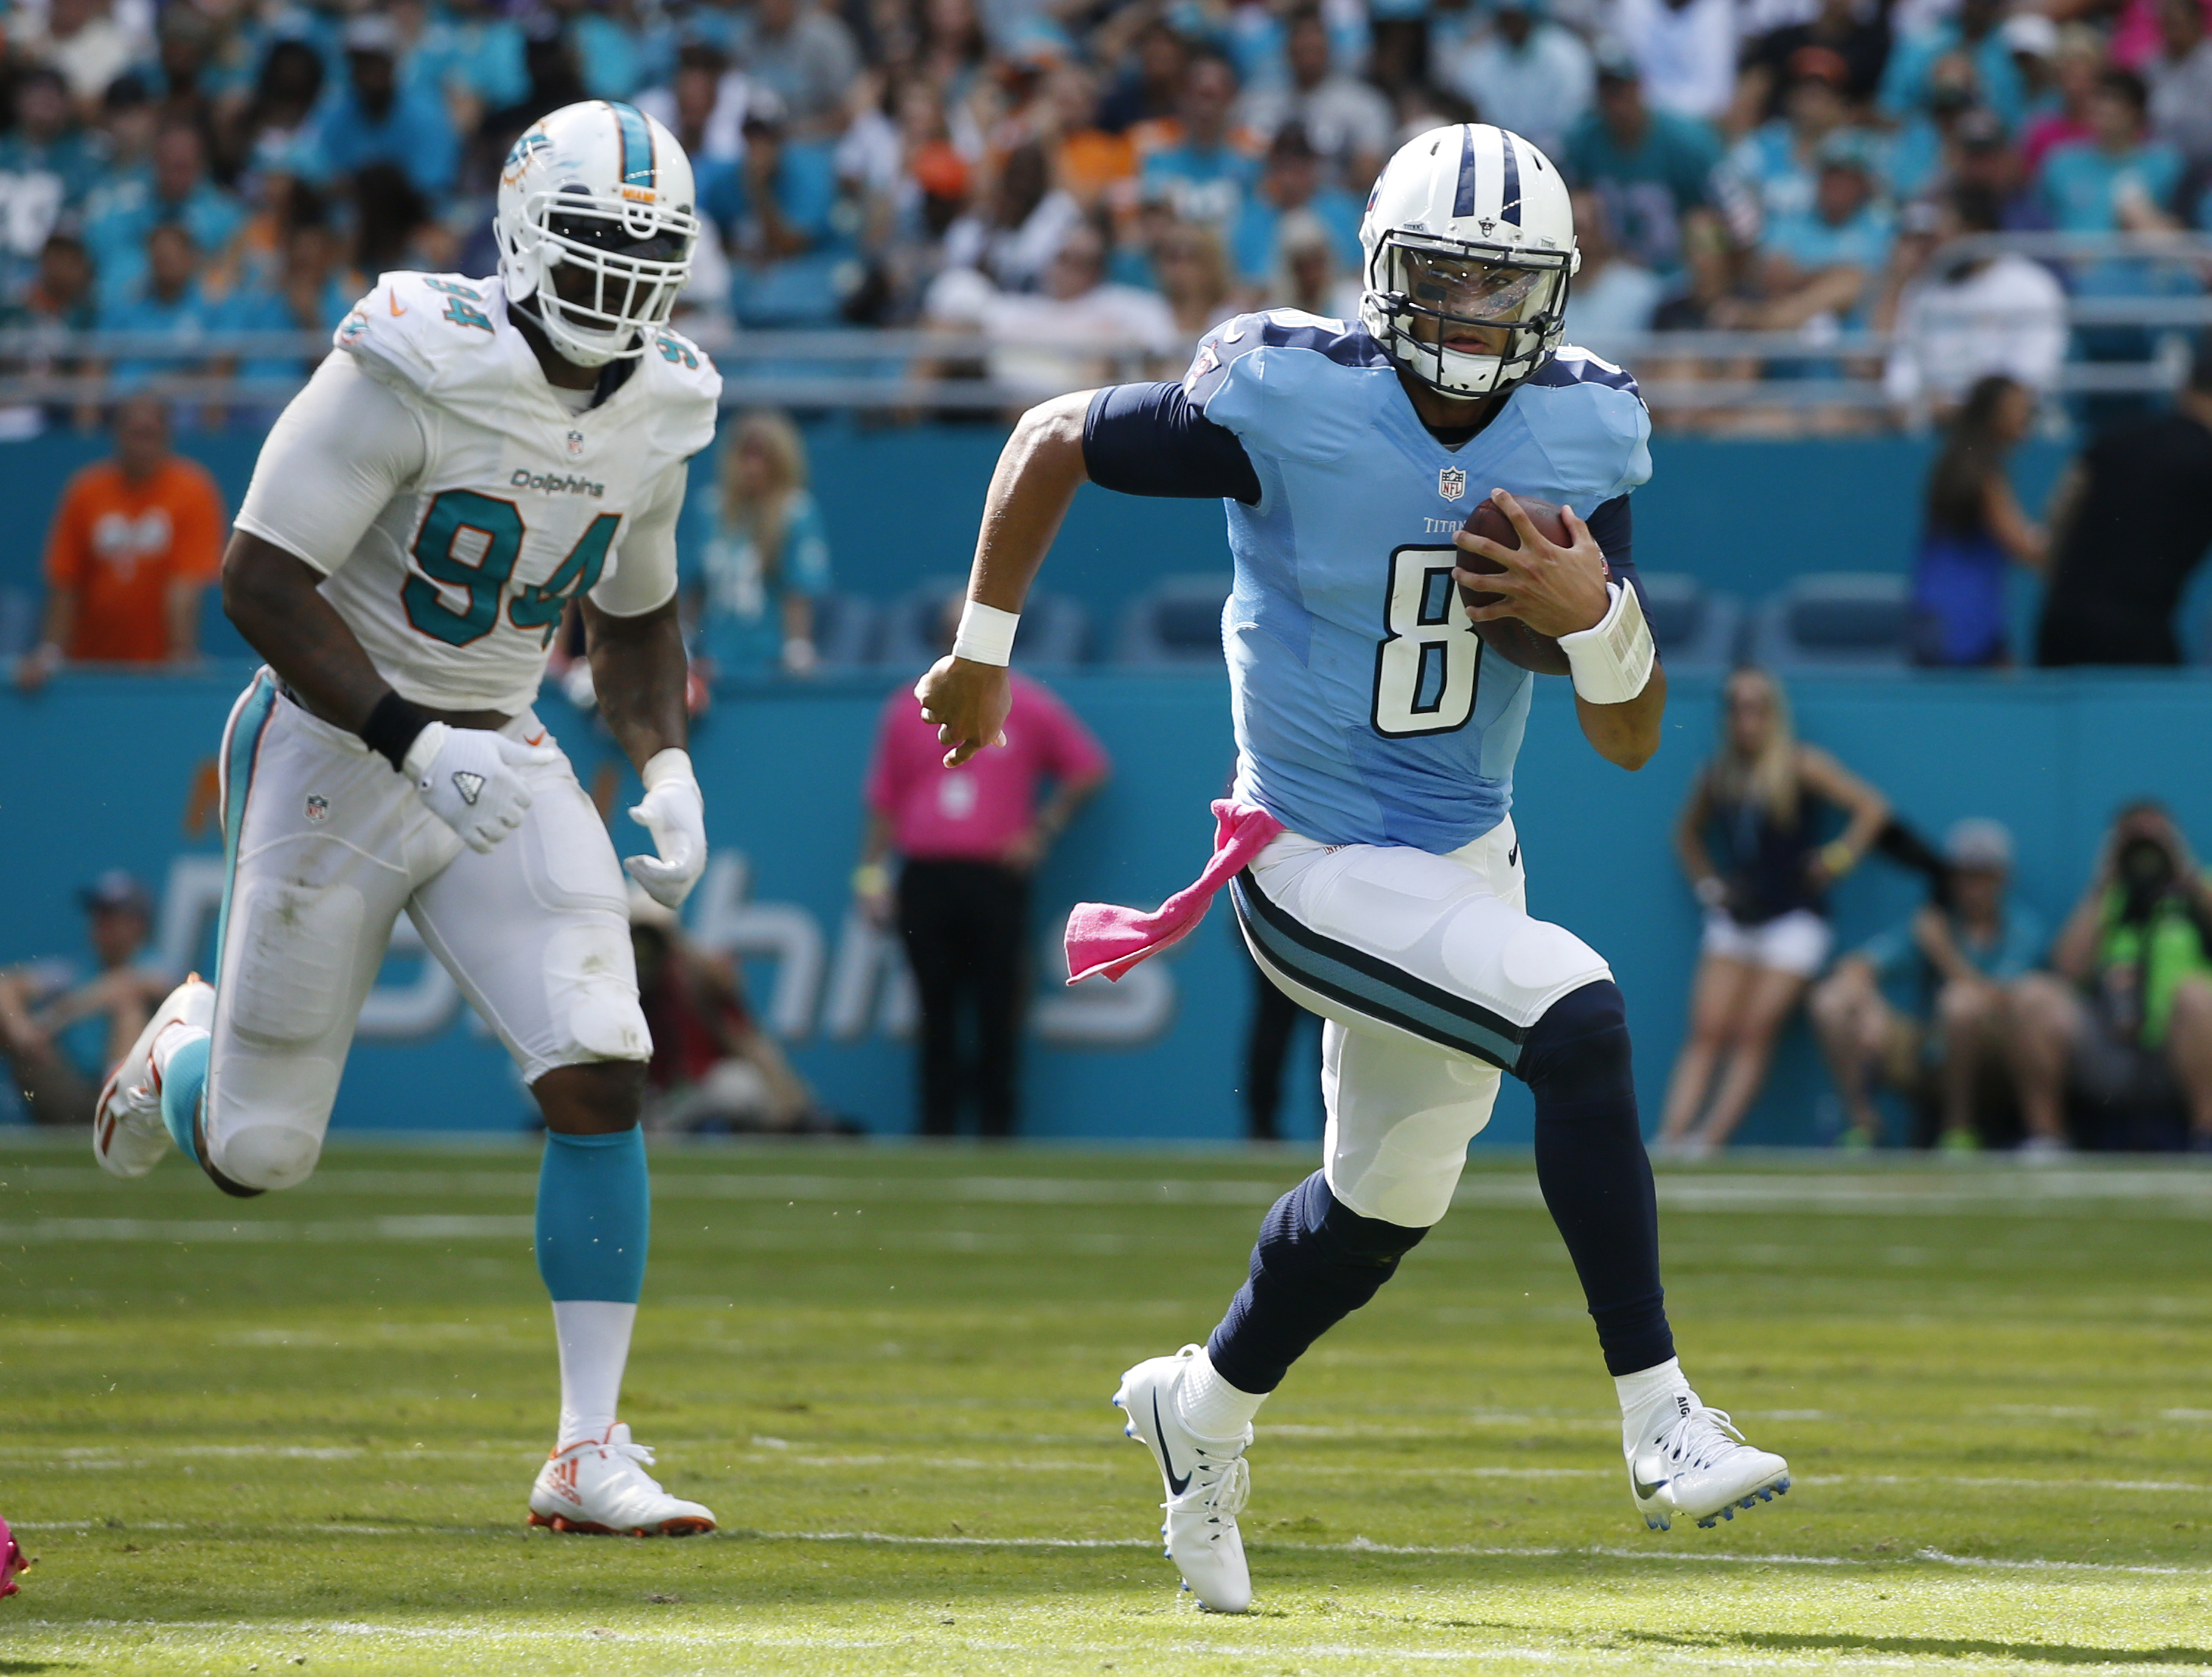 Tennessee Titans quarterback Marcus Mariota (8) runs with the ball ahead of Miami Dolphins defensive end Mario Williams (94), during the second half of an NFL football game, Sunday, Oct. 9, 2016, in Miami Gardens, Fla. Mariota threw for three touchdowns a